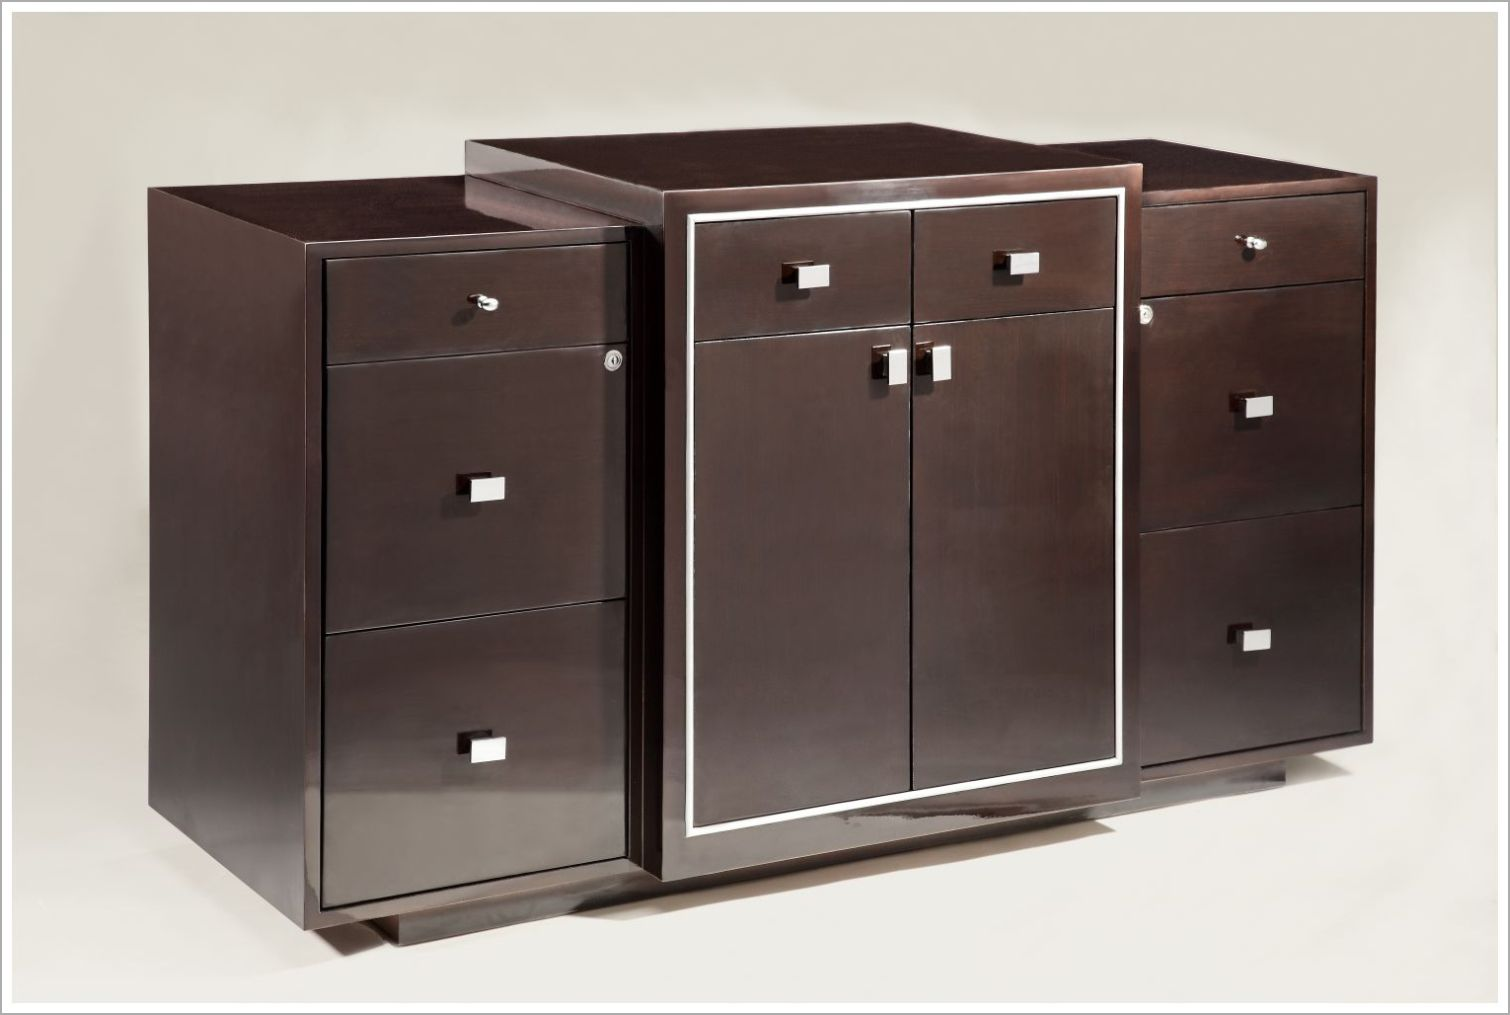 Custom Hospitality Cabinet with Stainless Steel Hardware